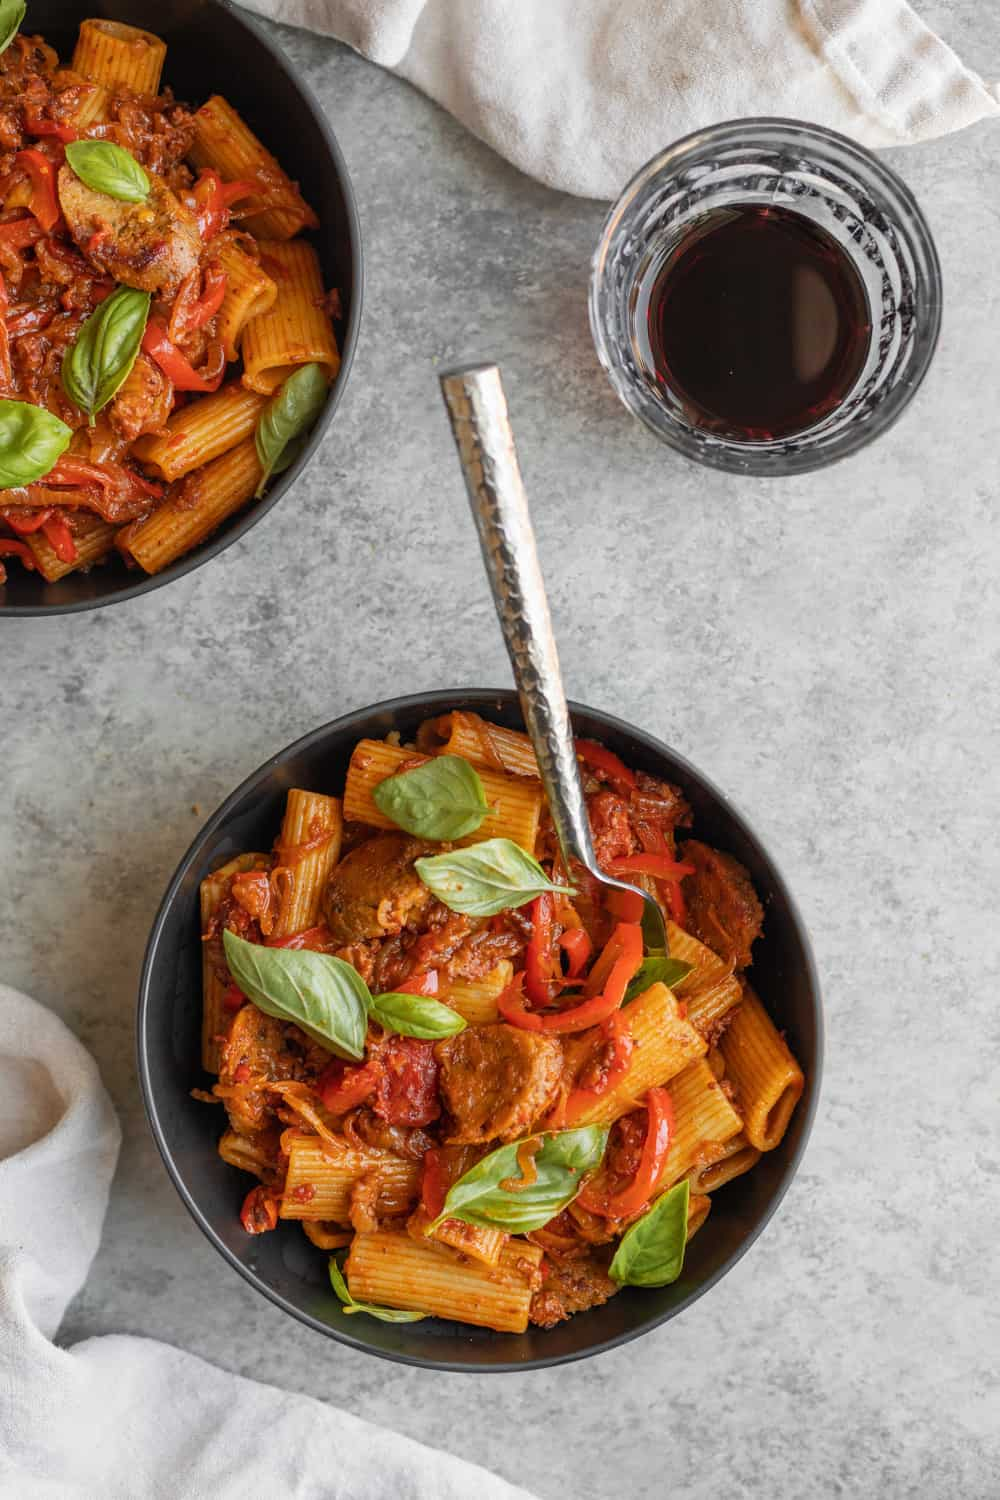 Vegan Rigatoni with Sausage and Peppers in a bowl